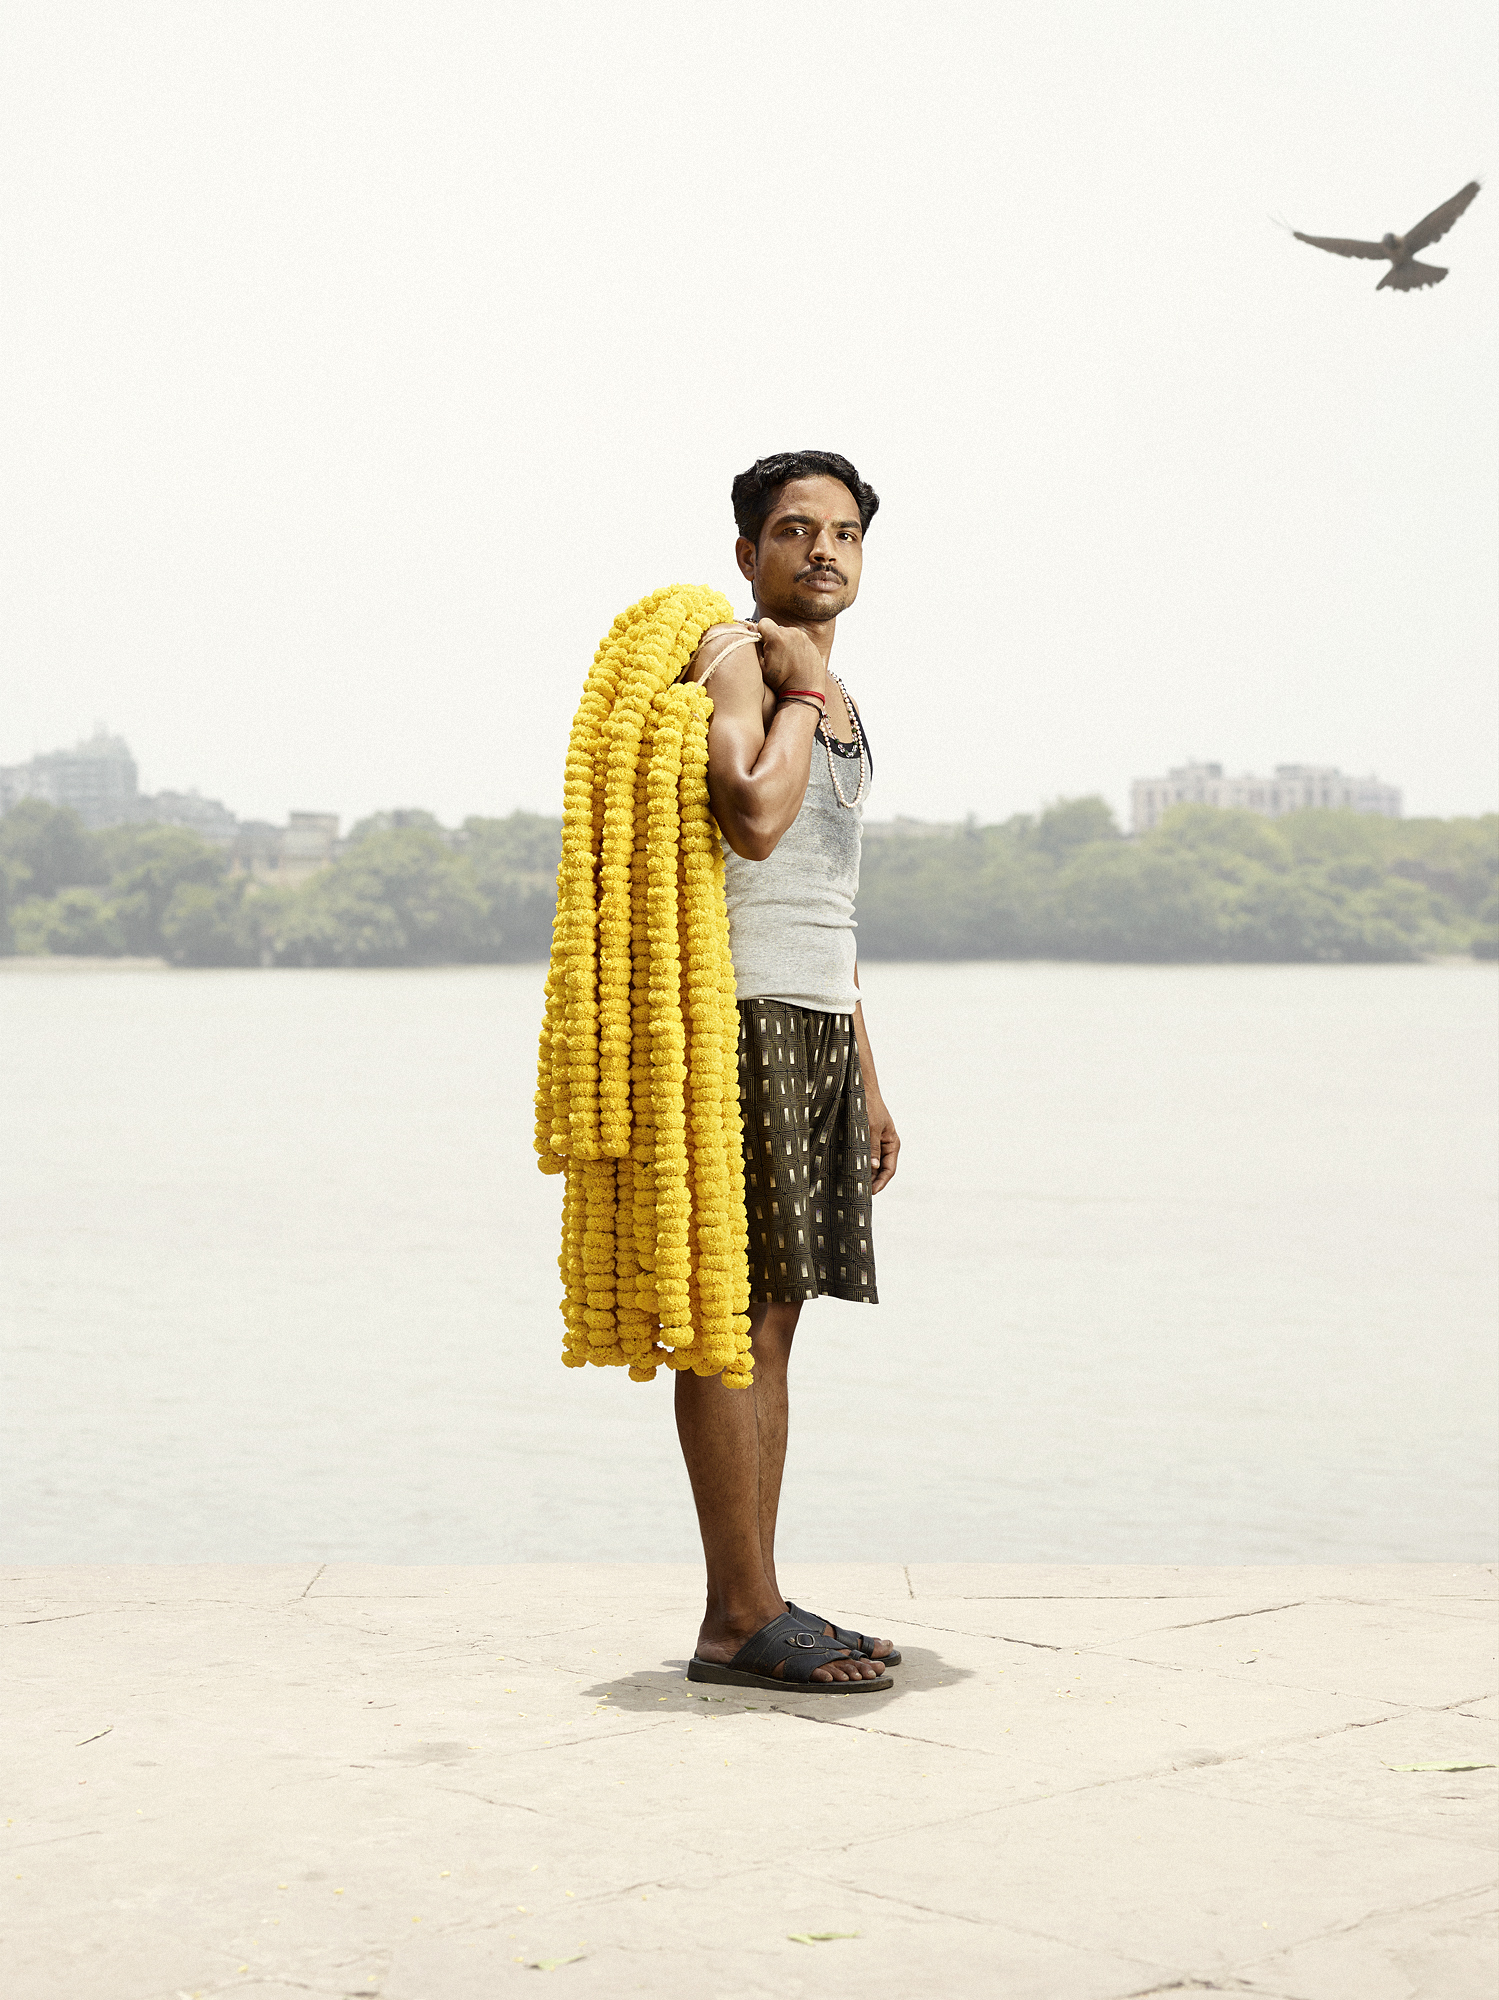 India S Flower Men Are A New Kind Of Masculine Huffpost